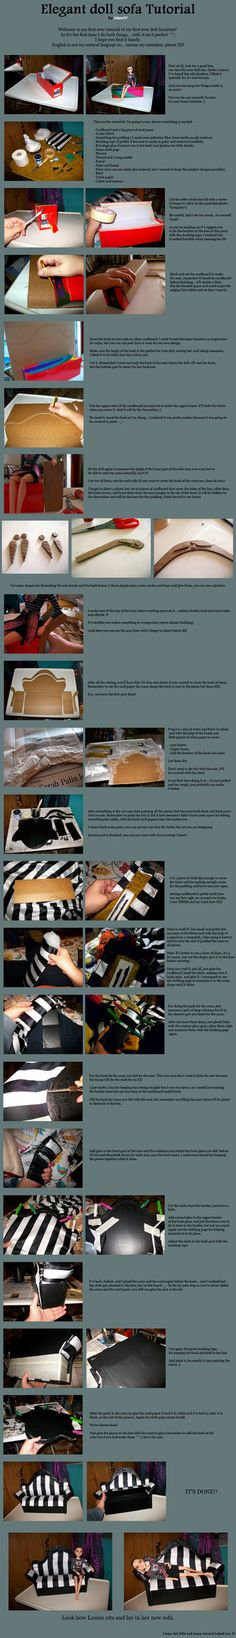 Elegant doll sofa tutorial by *MarsW on deviantART